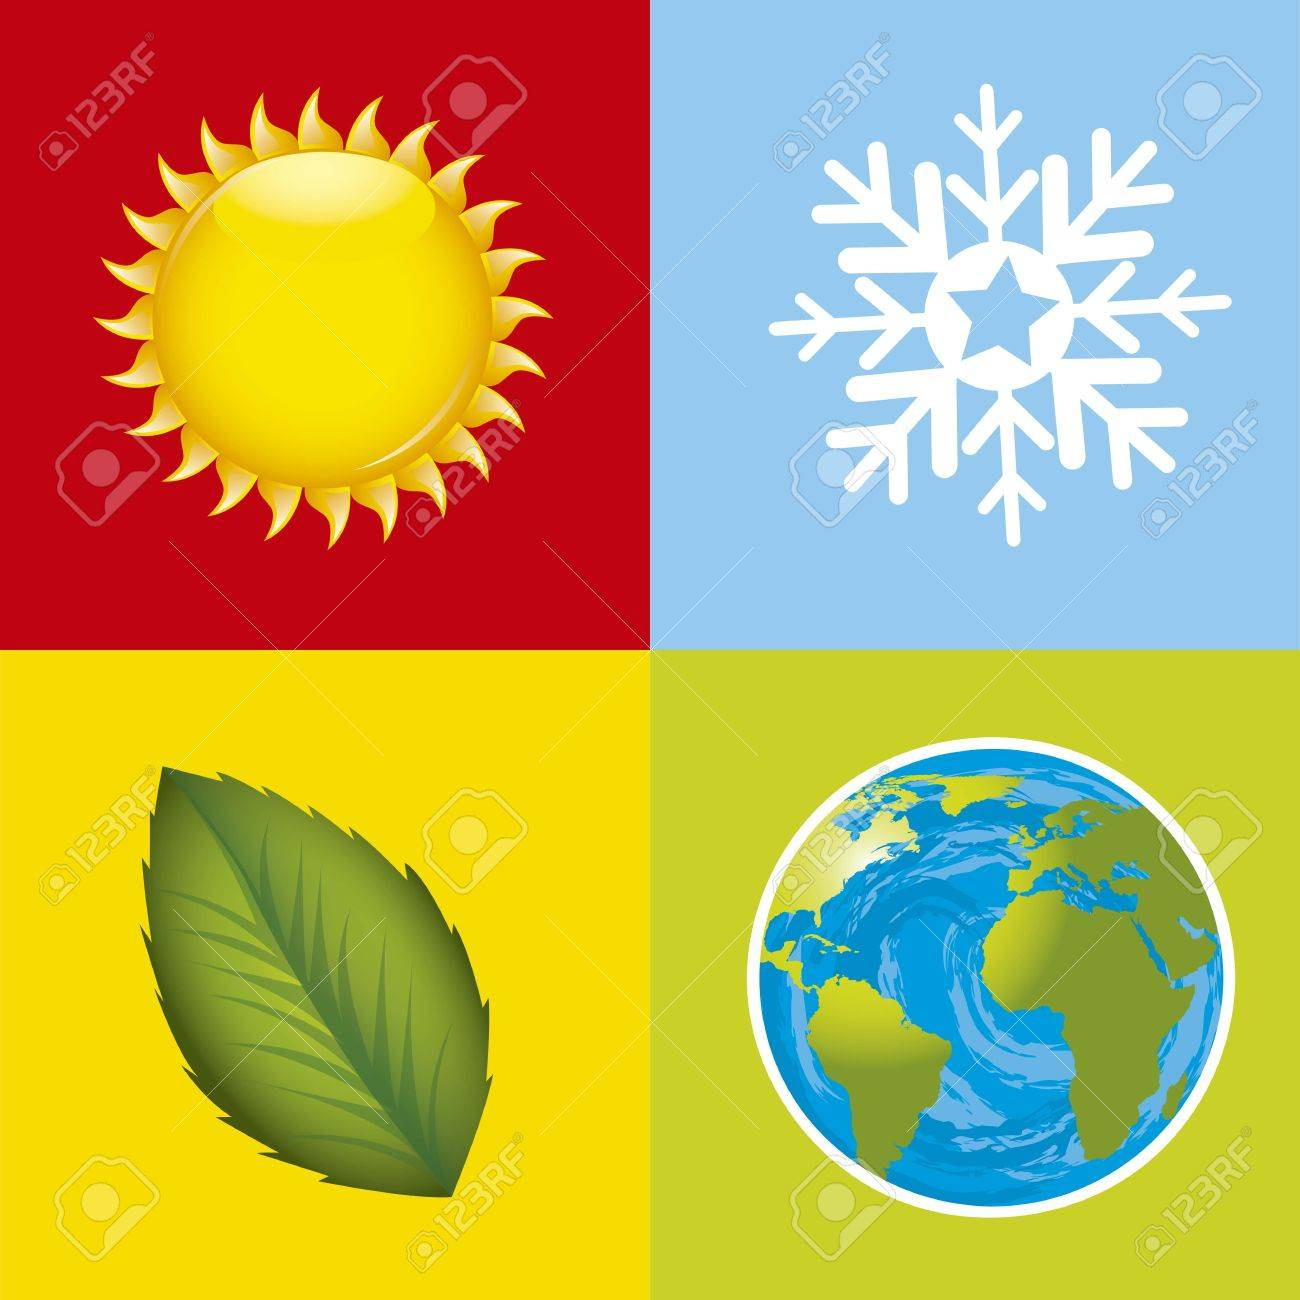 colorful weather stations icons. Stock Vector - 15787605